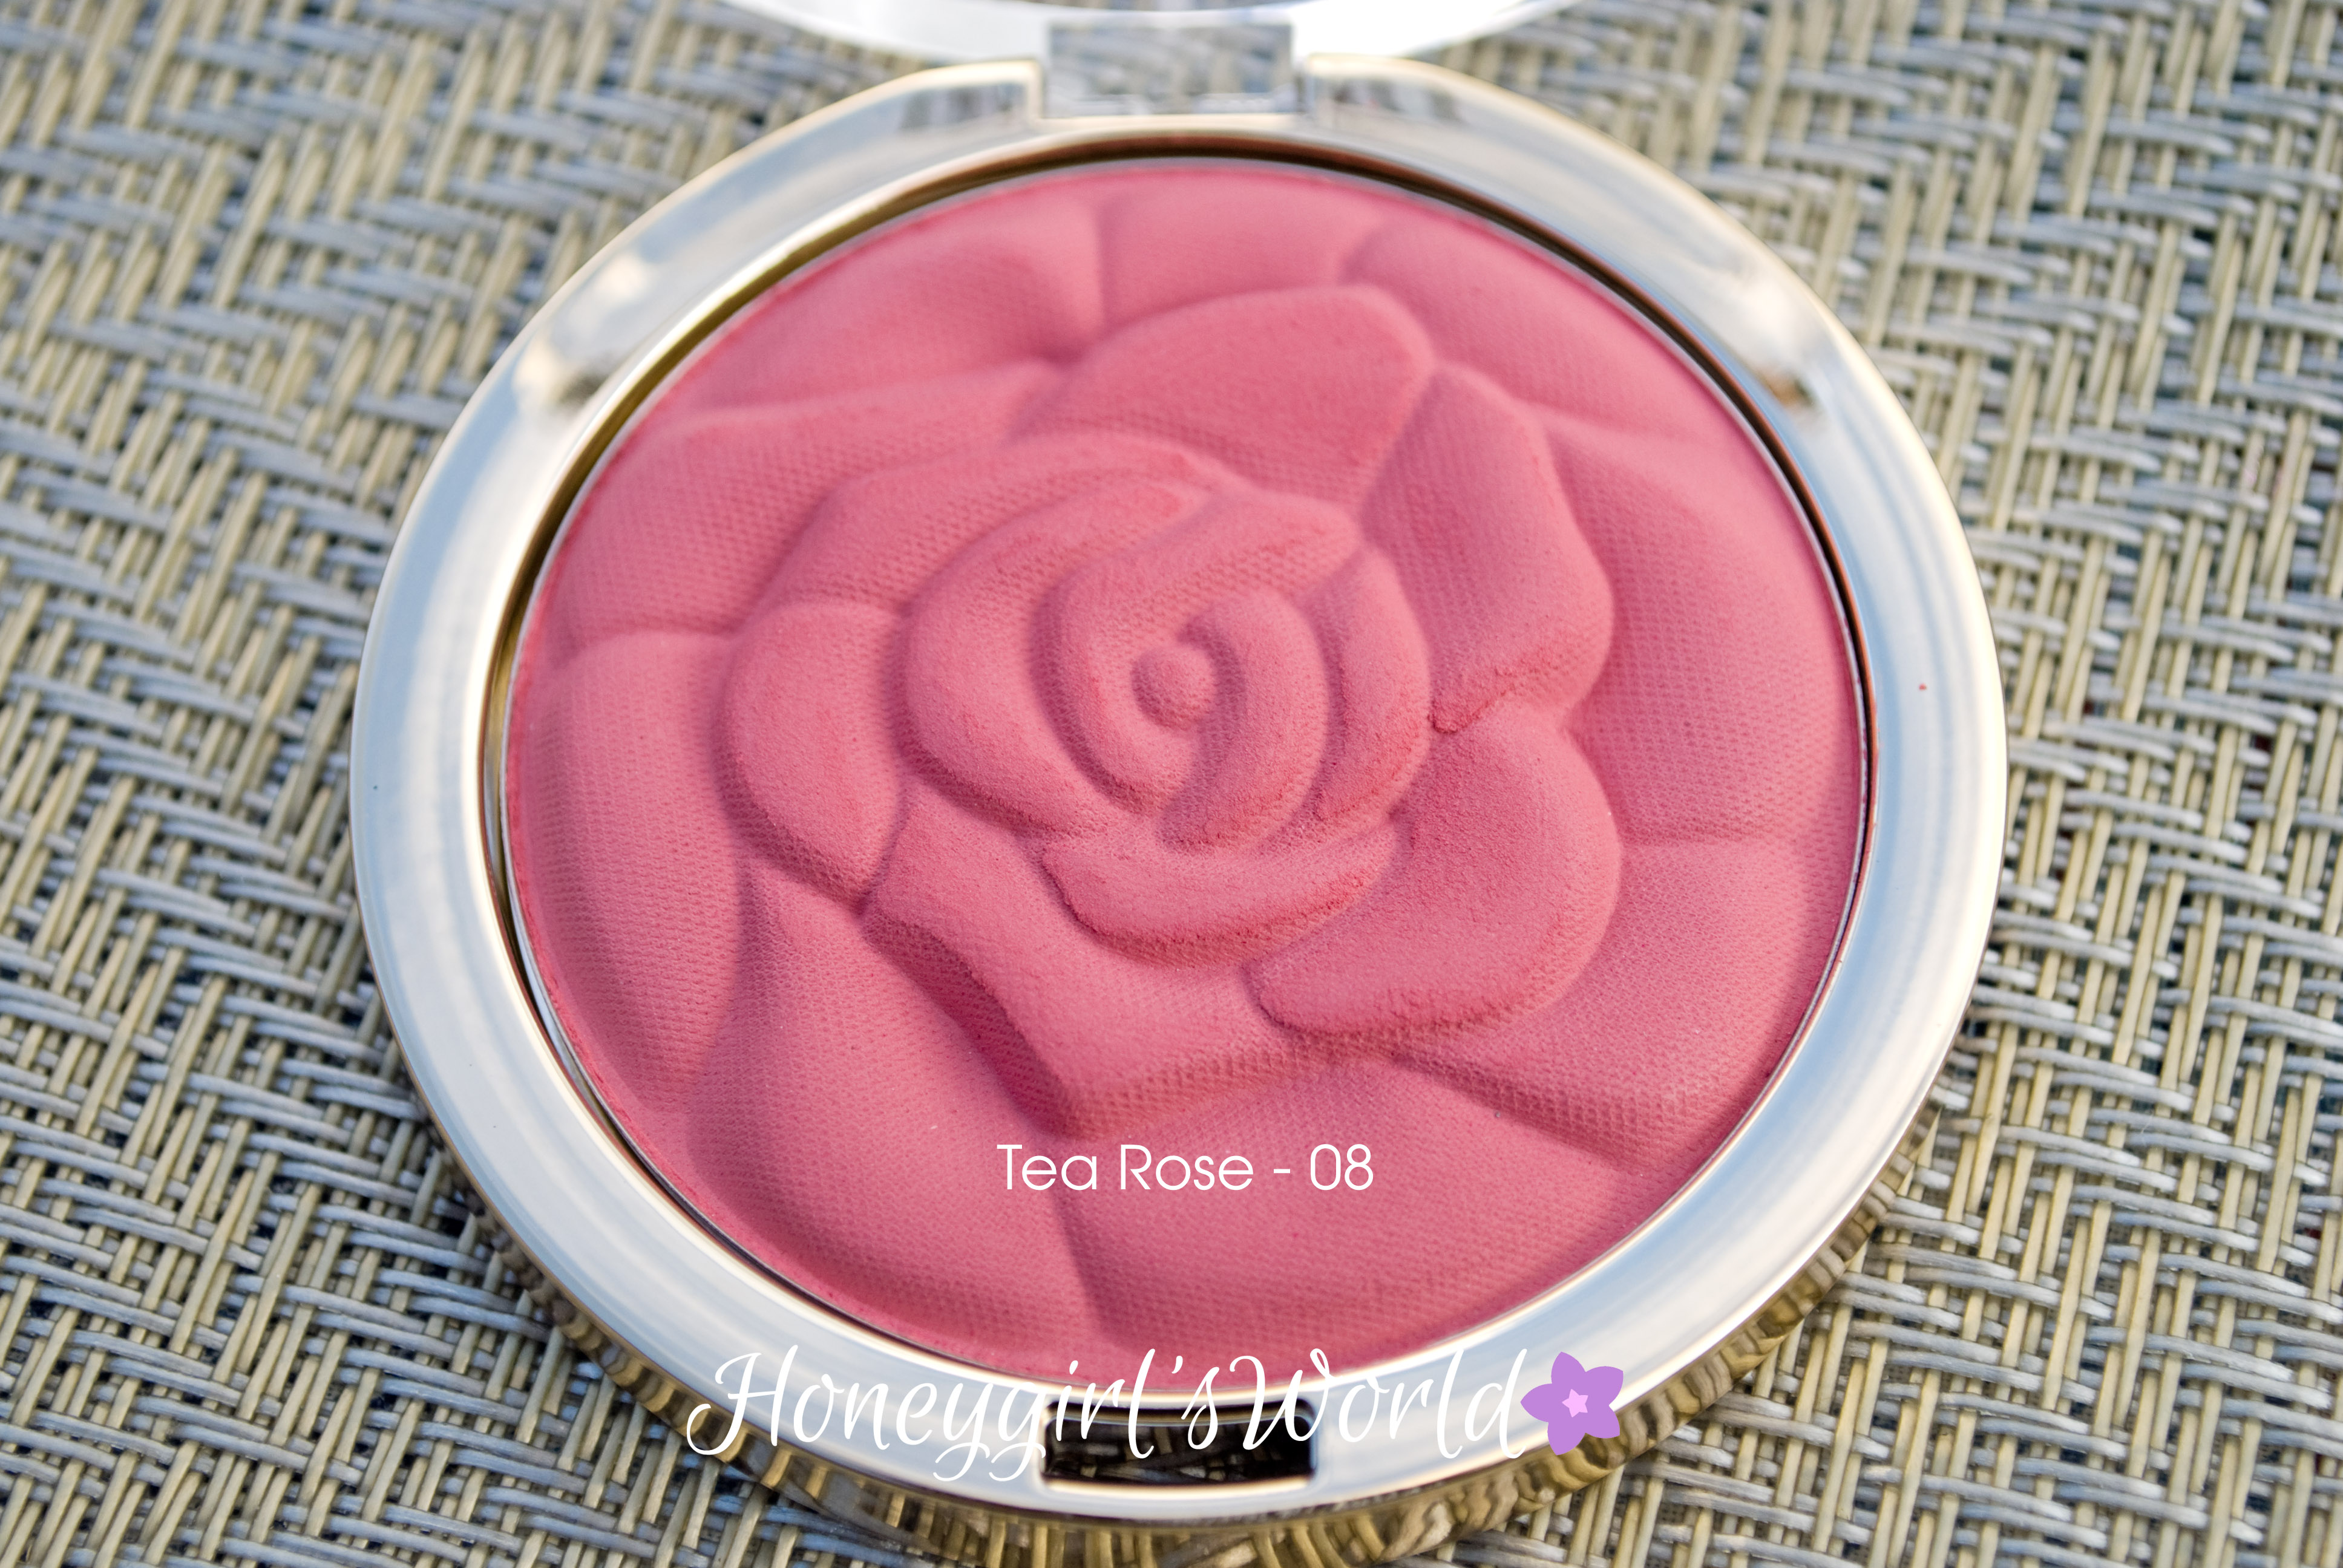 08 Tea Rose - Milani Rose Powder Blush